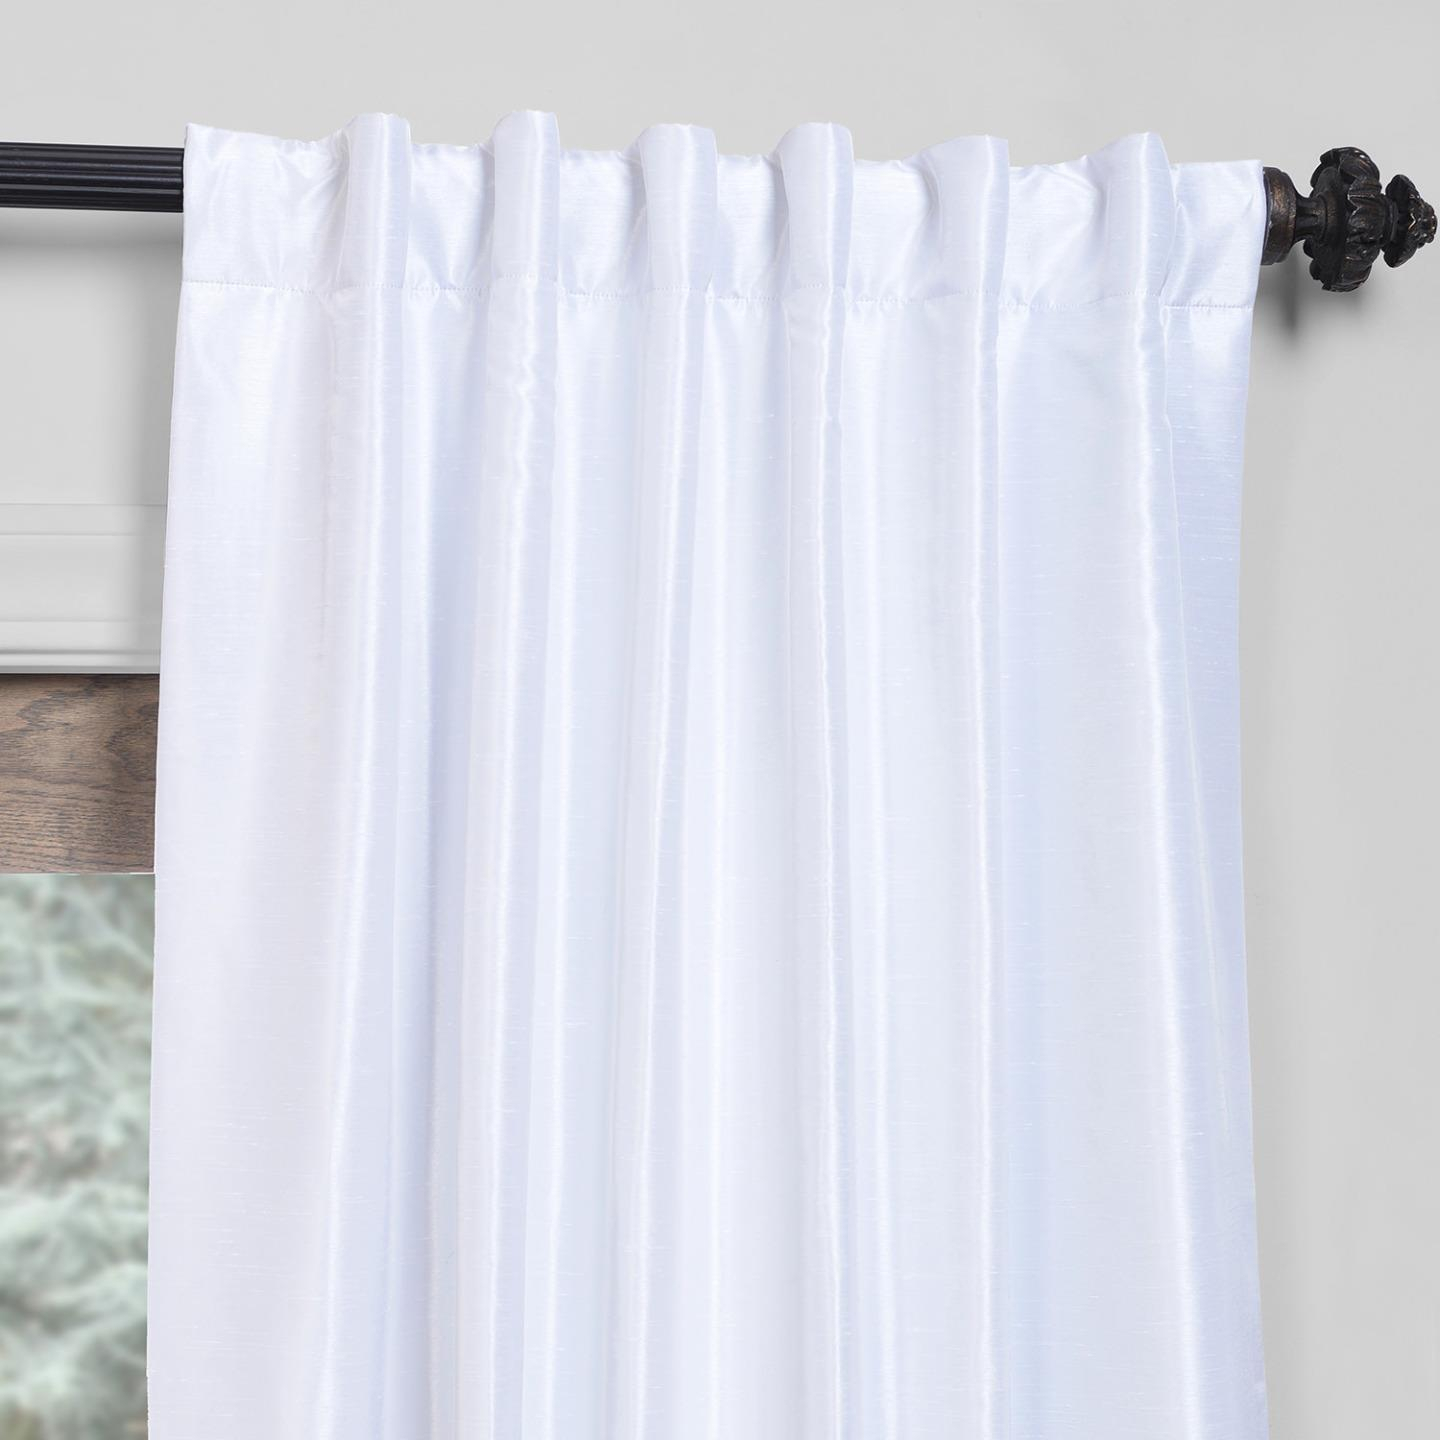 """Exclusive Fabrics True Blackout Vintage Textured Faux Dupioni Silk Curtain Panel In 108""""l In Off White (as Is) In True Blackout Vintage Textured Faux Silk Curtain Panels (View 15 of 30)"""